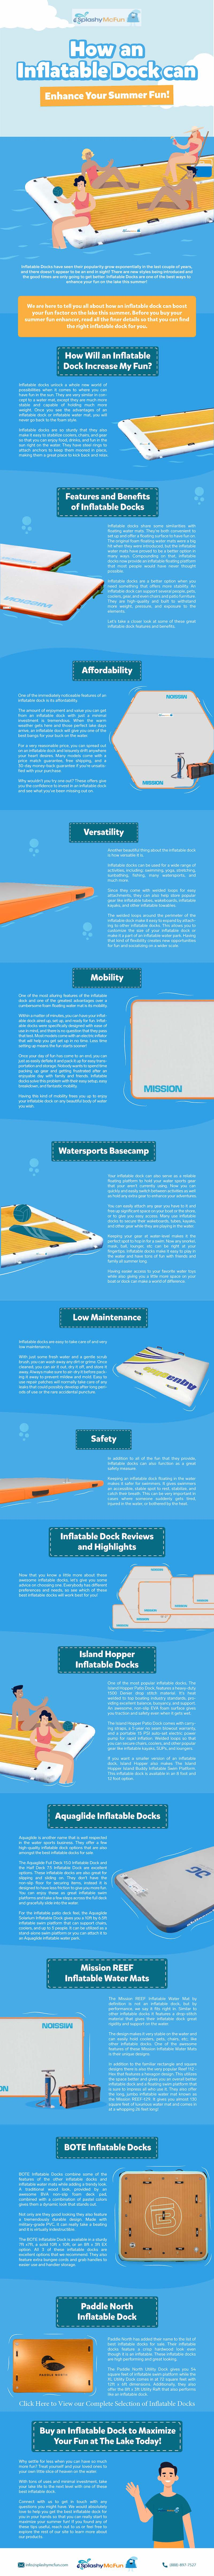 Lake Life: How an Inflatable Dock Can Enhance Your Summer Fun Infographic. All of the information in the blog is illustrated with text also.